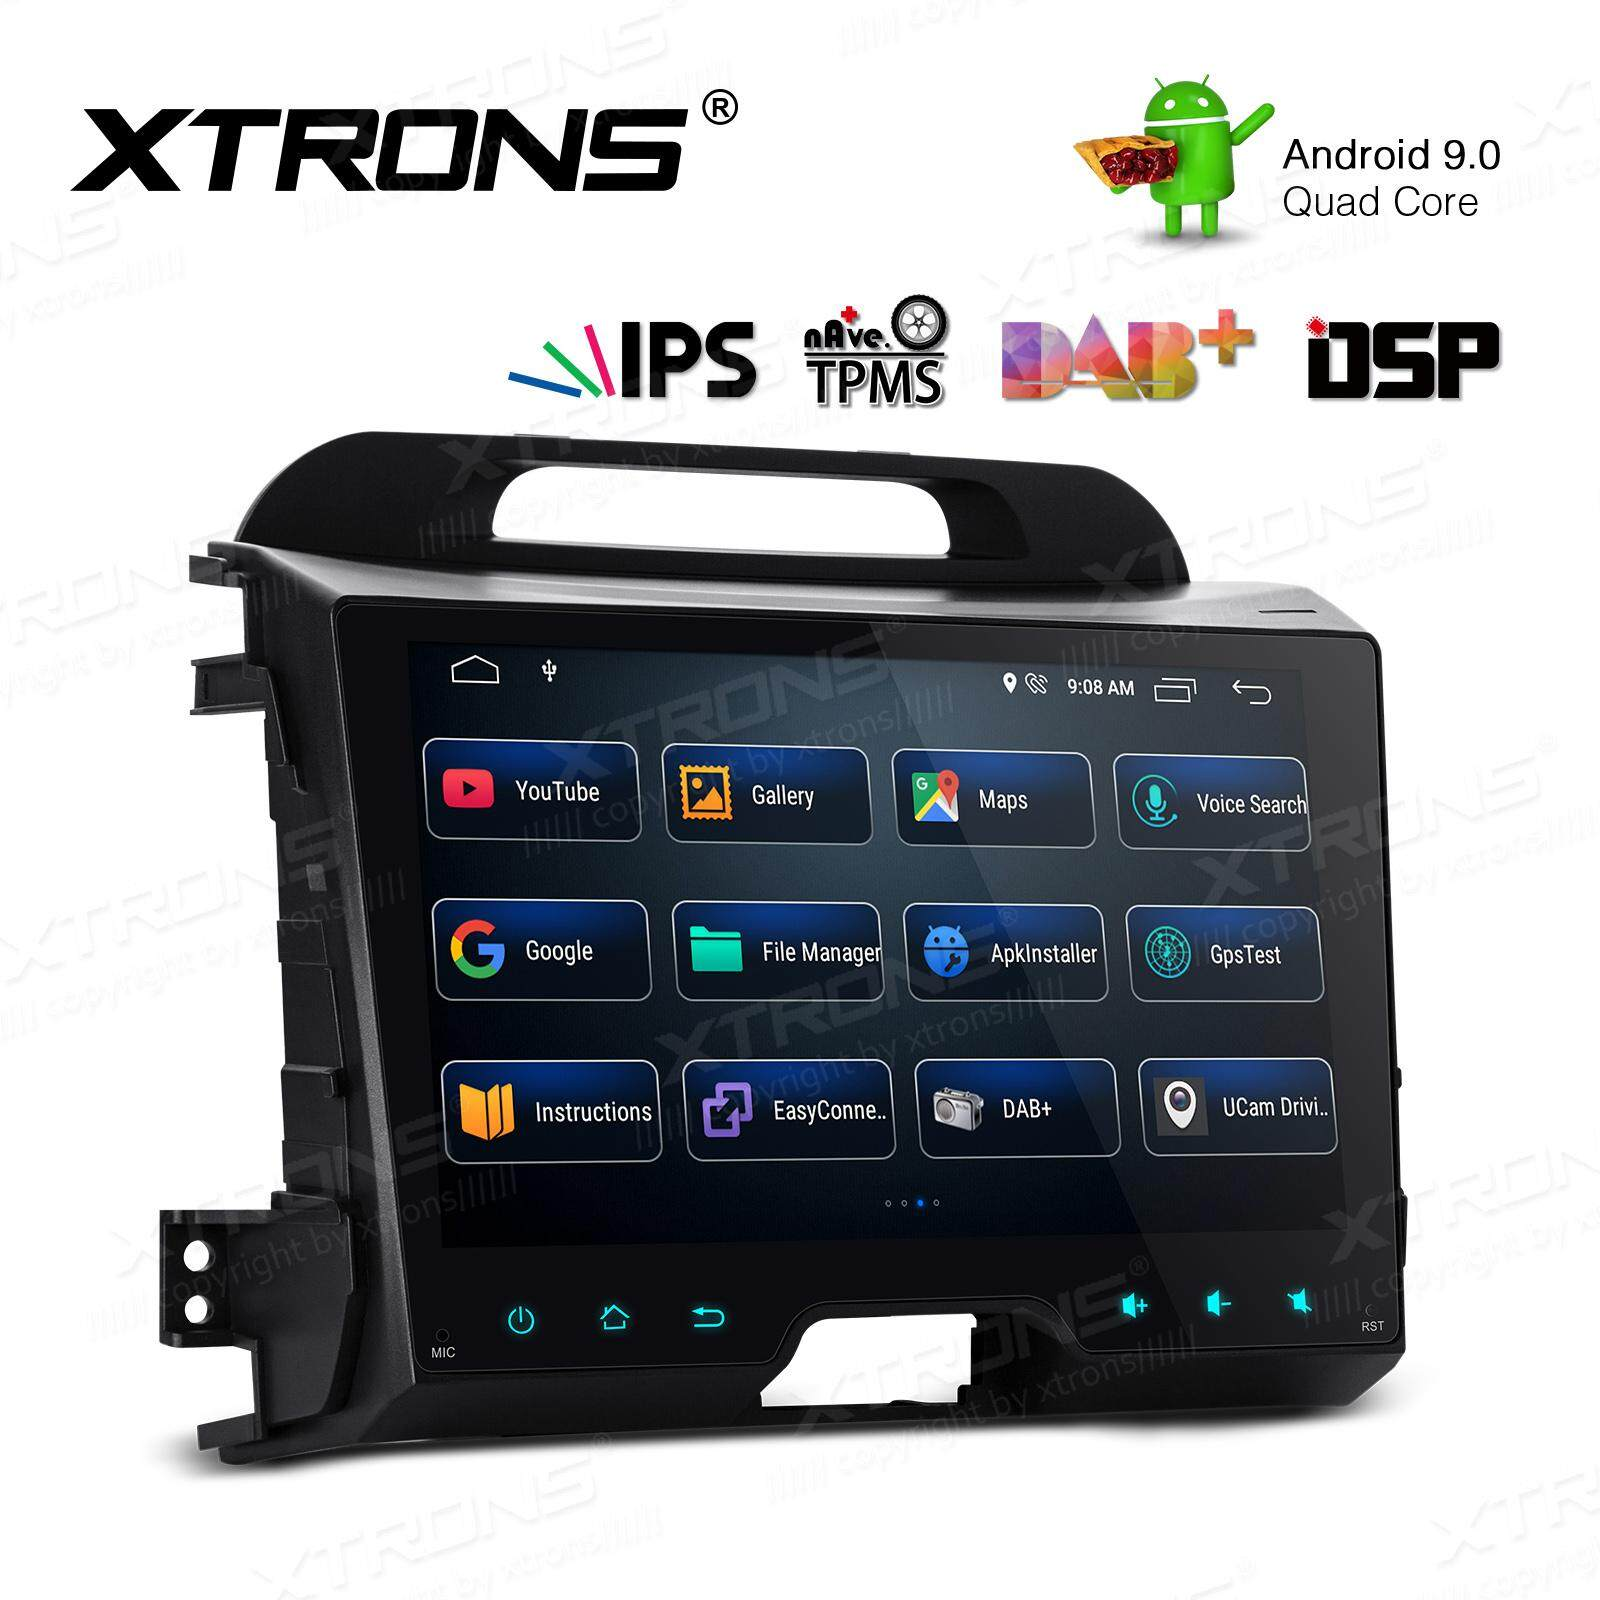 XTRONS Android 9.0 Head Unit Auto Radio GPS Sat Nav DSP In Dash Car Stereo Bluetooth with 9 Inch IPS Touch Screen Support WiFi DVR DAB Full RCA For Kia Sportage Series 3 2010-2016